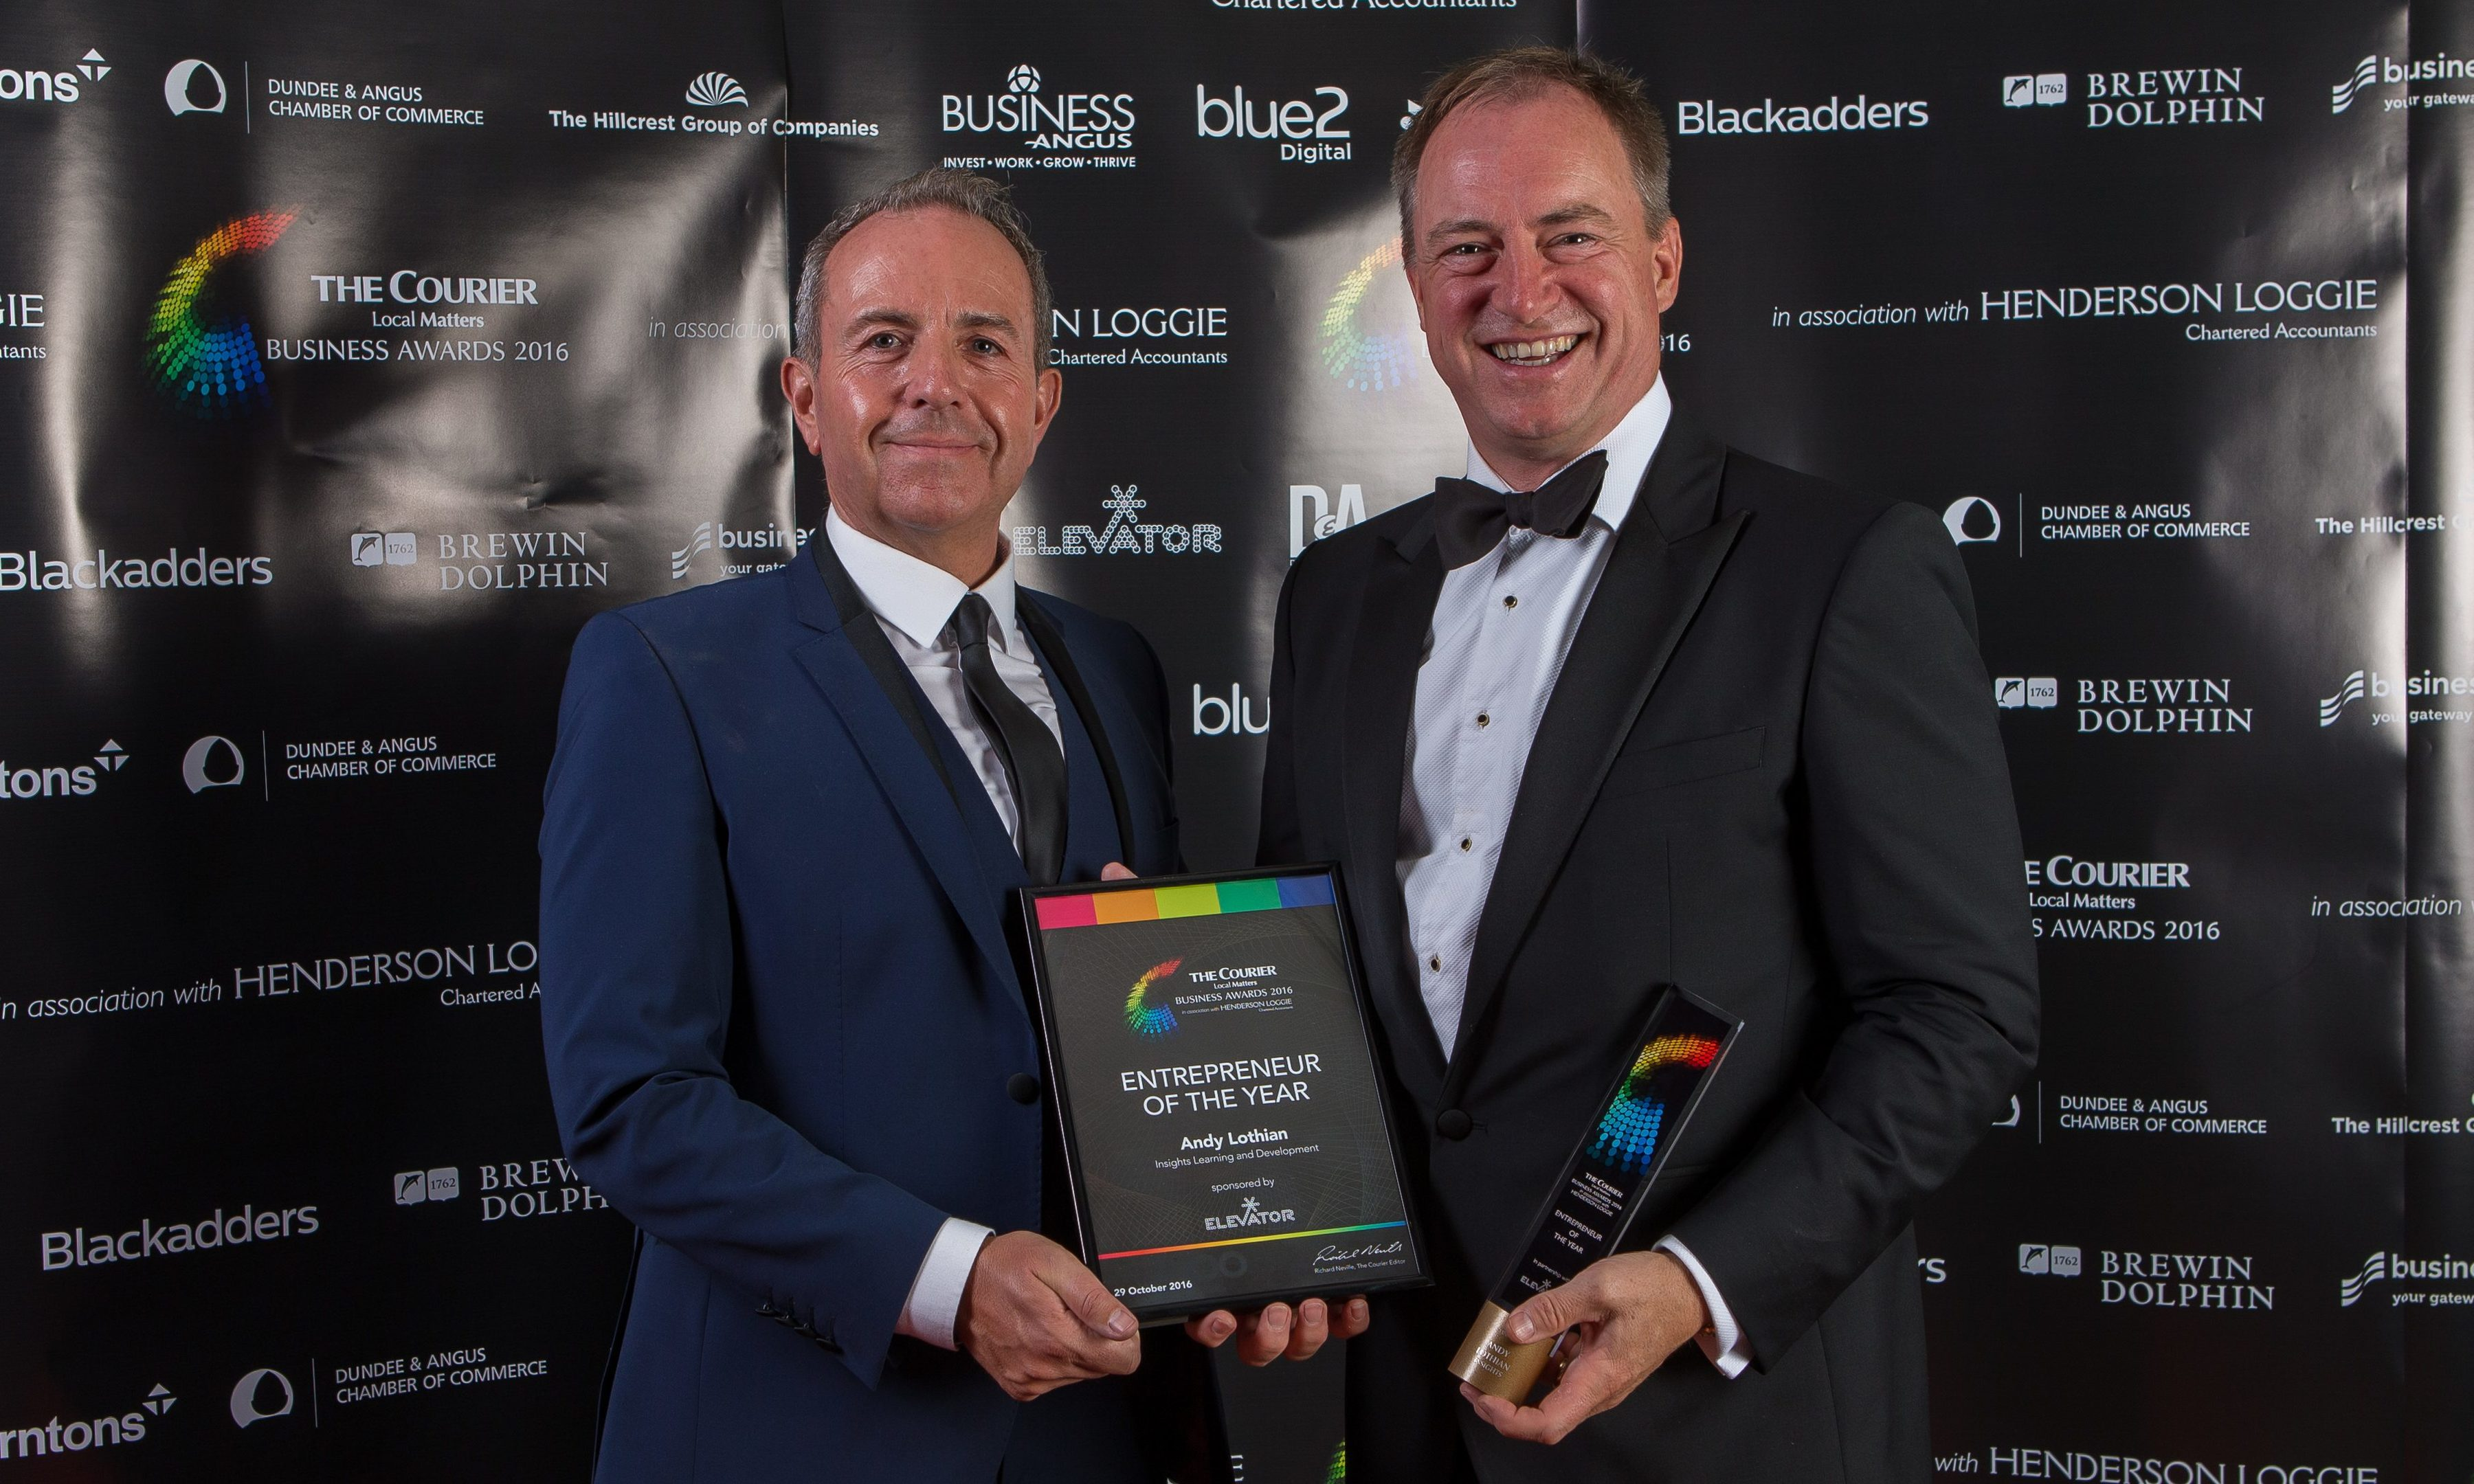 Andy Lothian (right) receiving the Entrepreneur of the Year prize at the 2016 Courier Business Awards from Professor Gary McEwan.